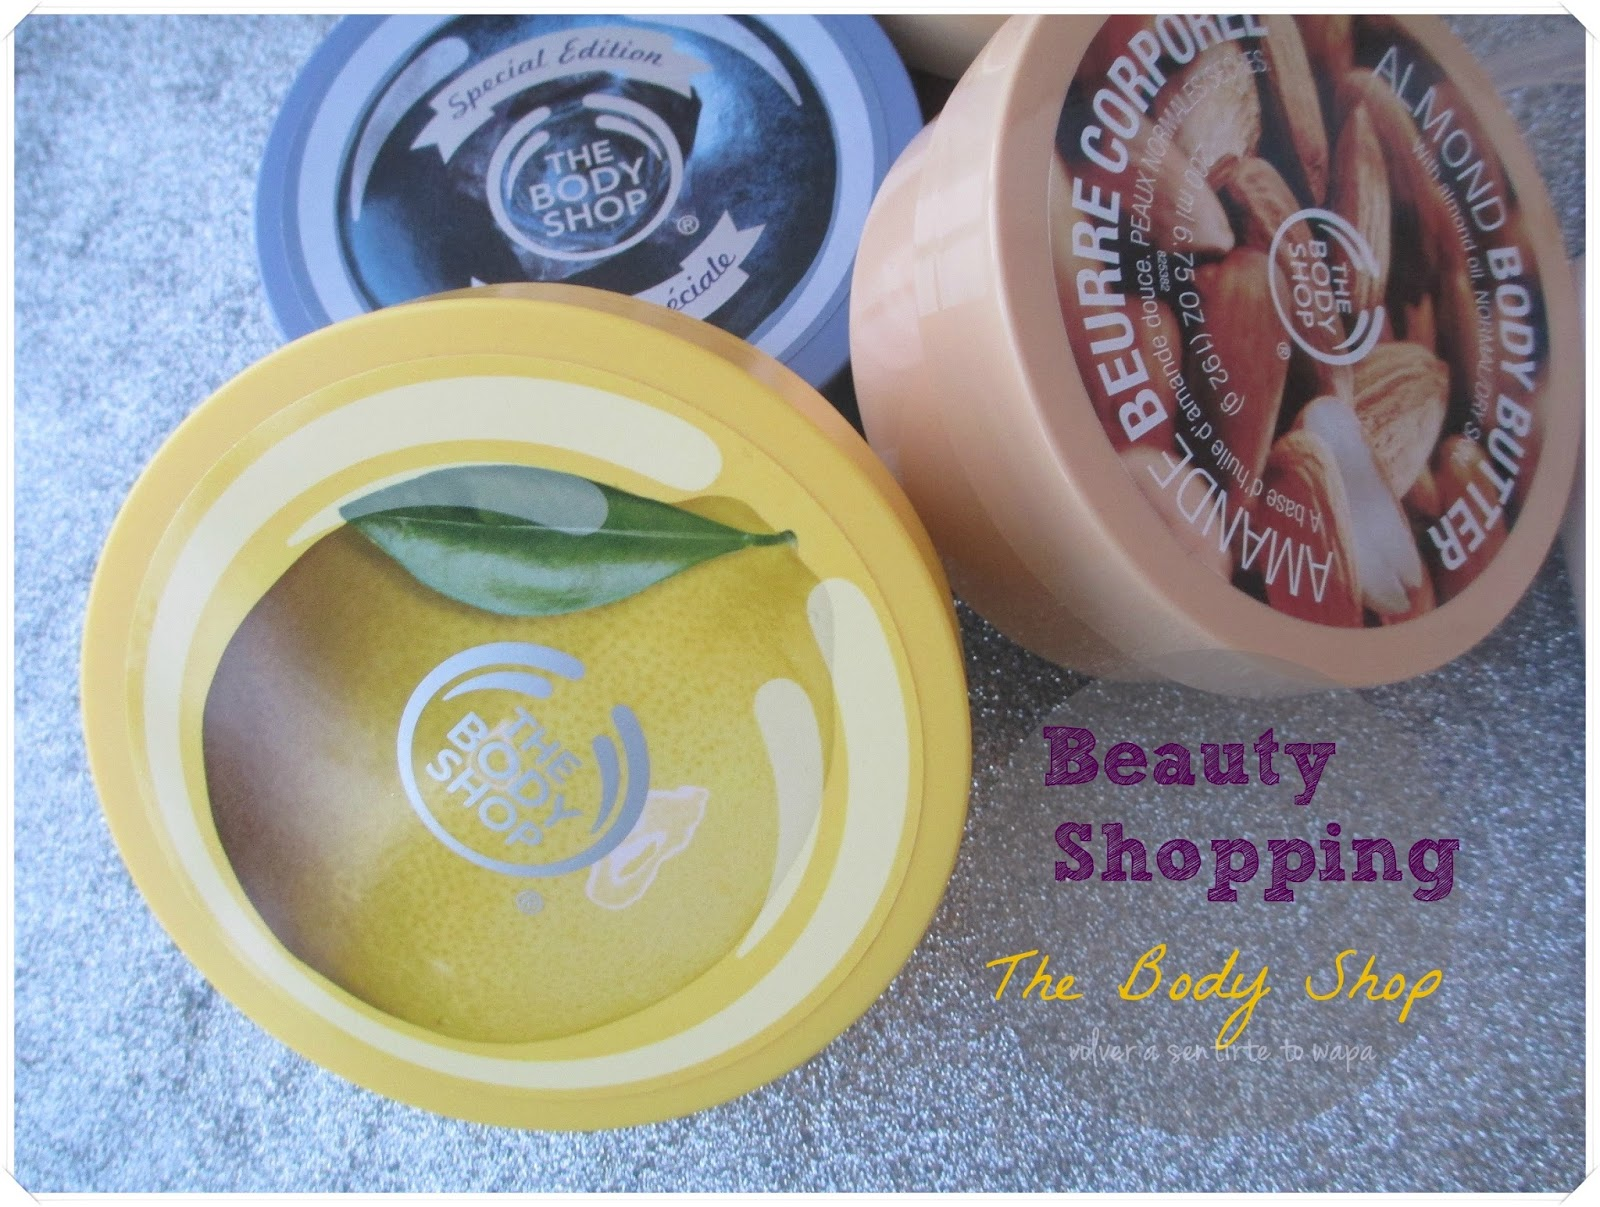 Rebajas en The Body Shop - Mantecas Corporales